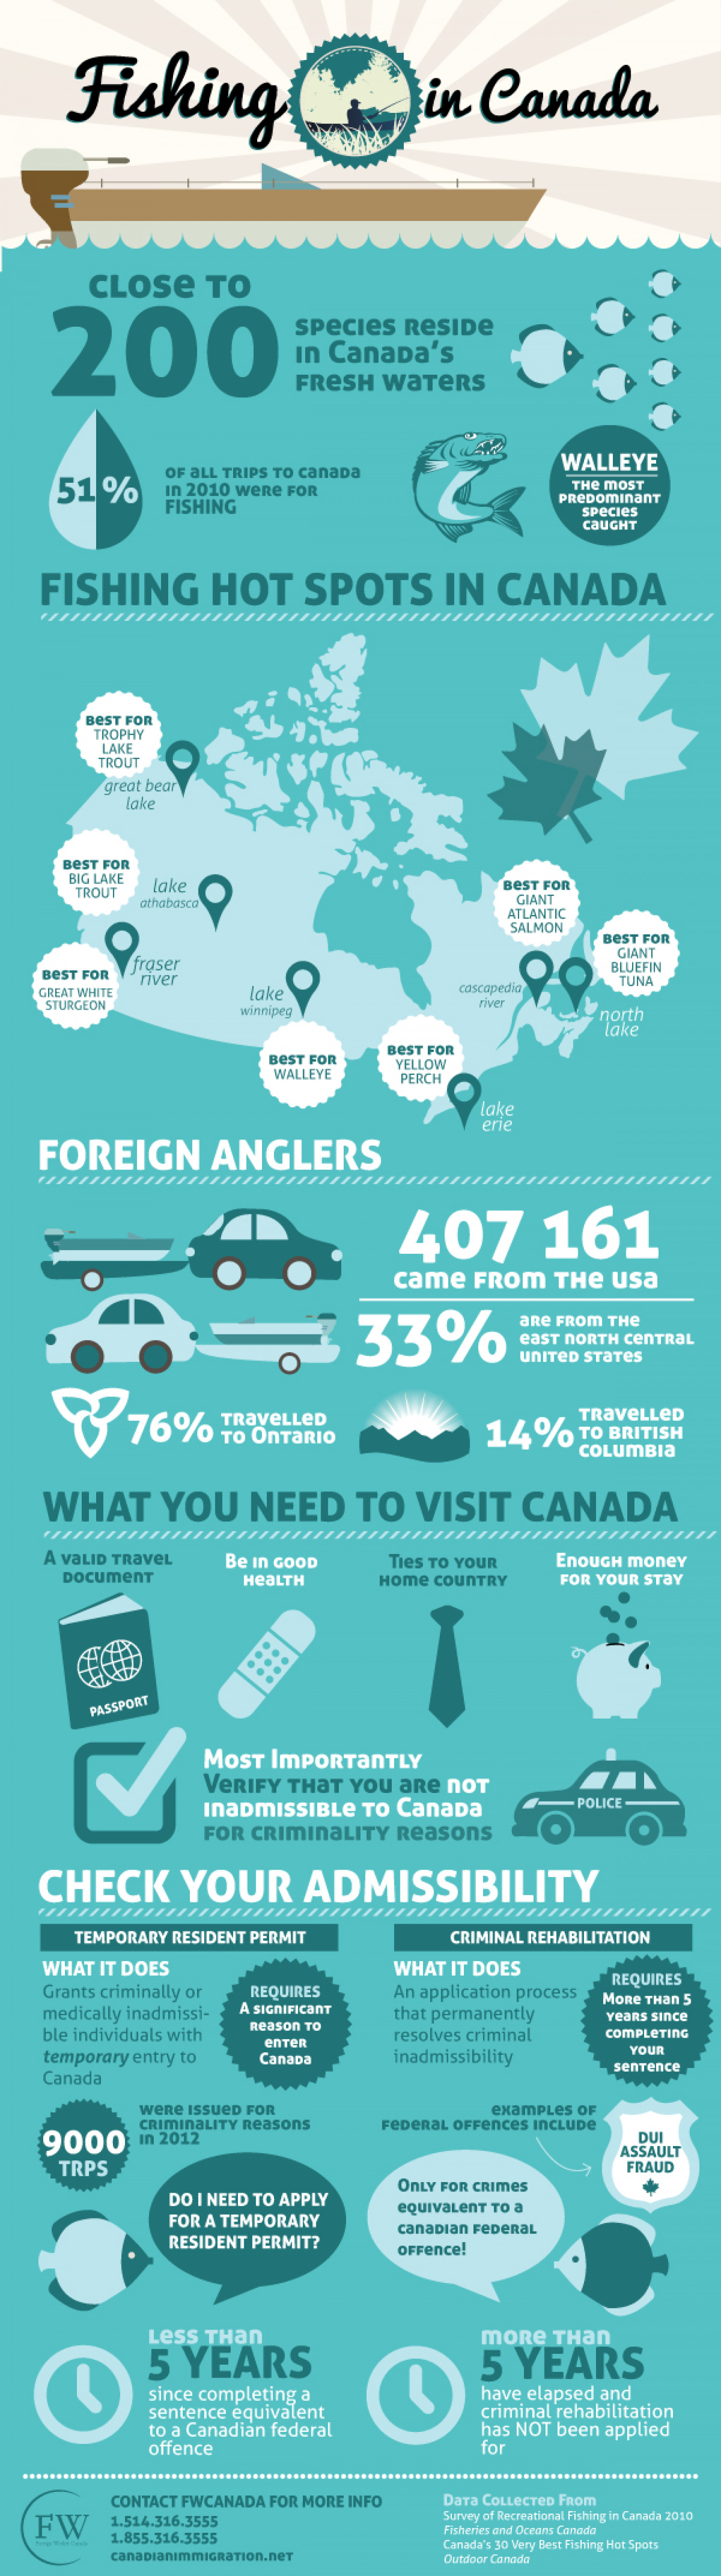 Fishing in Canada Infographic